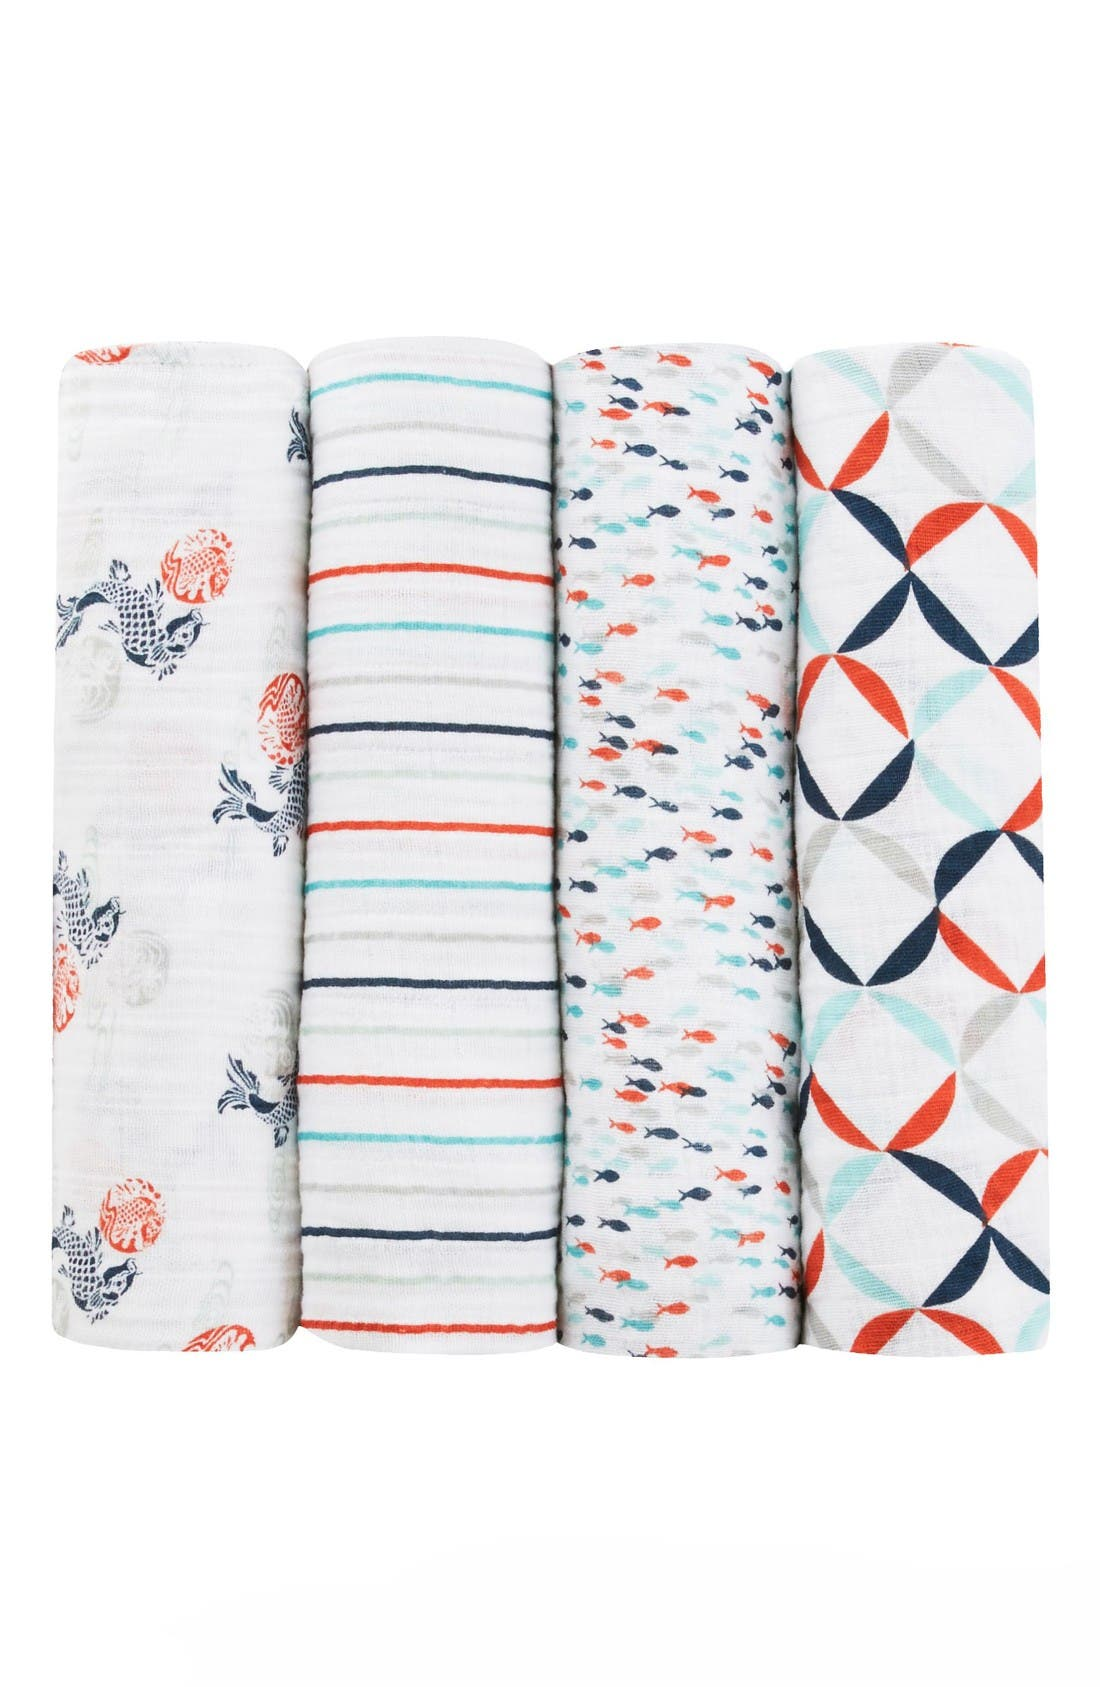 aden + anais x Tea Collection 4-Pack Swaddling Cloths | Nordstrom